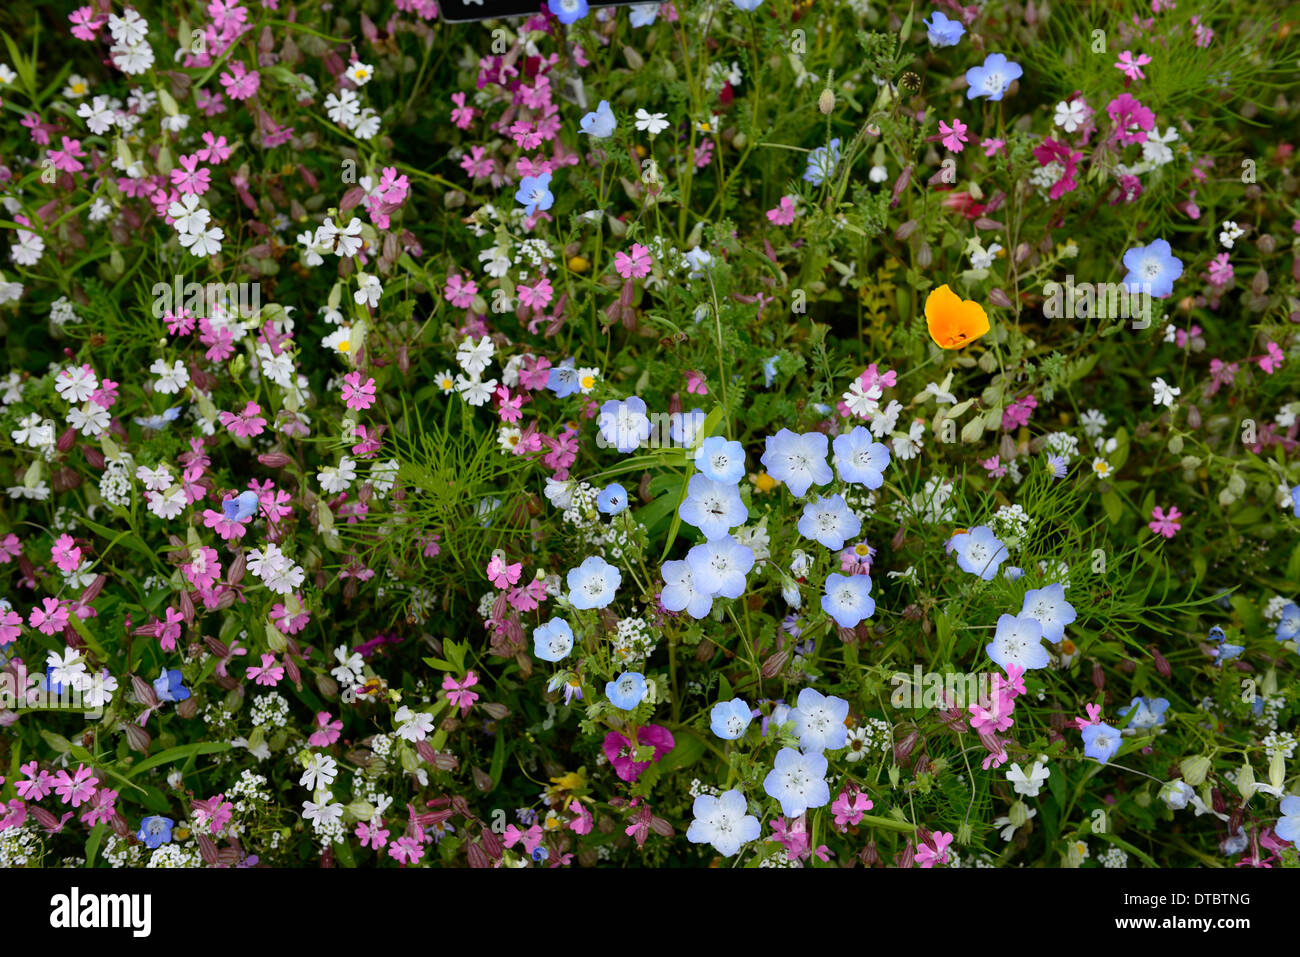 Stock Photo   Annual Wildflower Meadow Summer Wildflowers Meadows Wild  Gardens Flowers Naturalised Planting Combinations Mixed Annuals